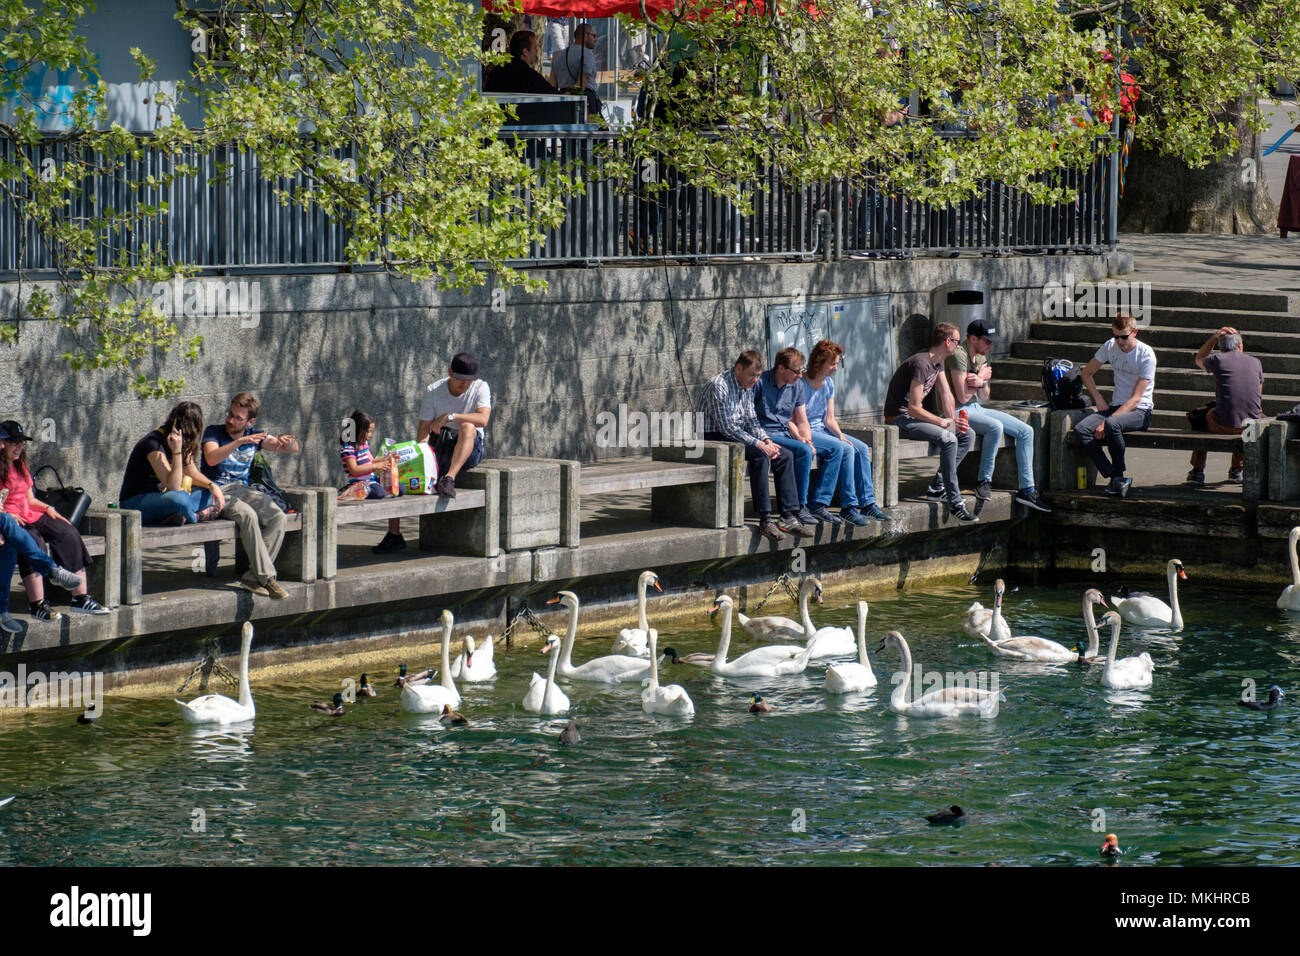 People enjoying the sun and feeding the swans on the shores of the lake in Zürich, Switzerland, Europe - Stock Image